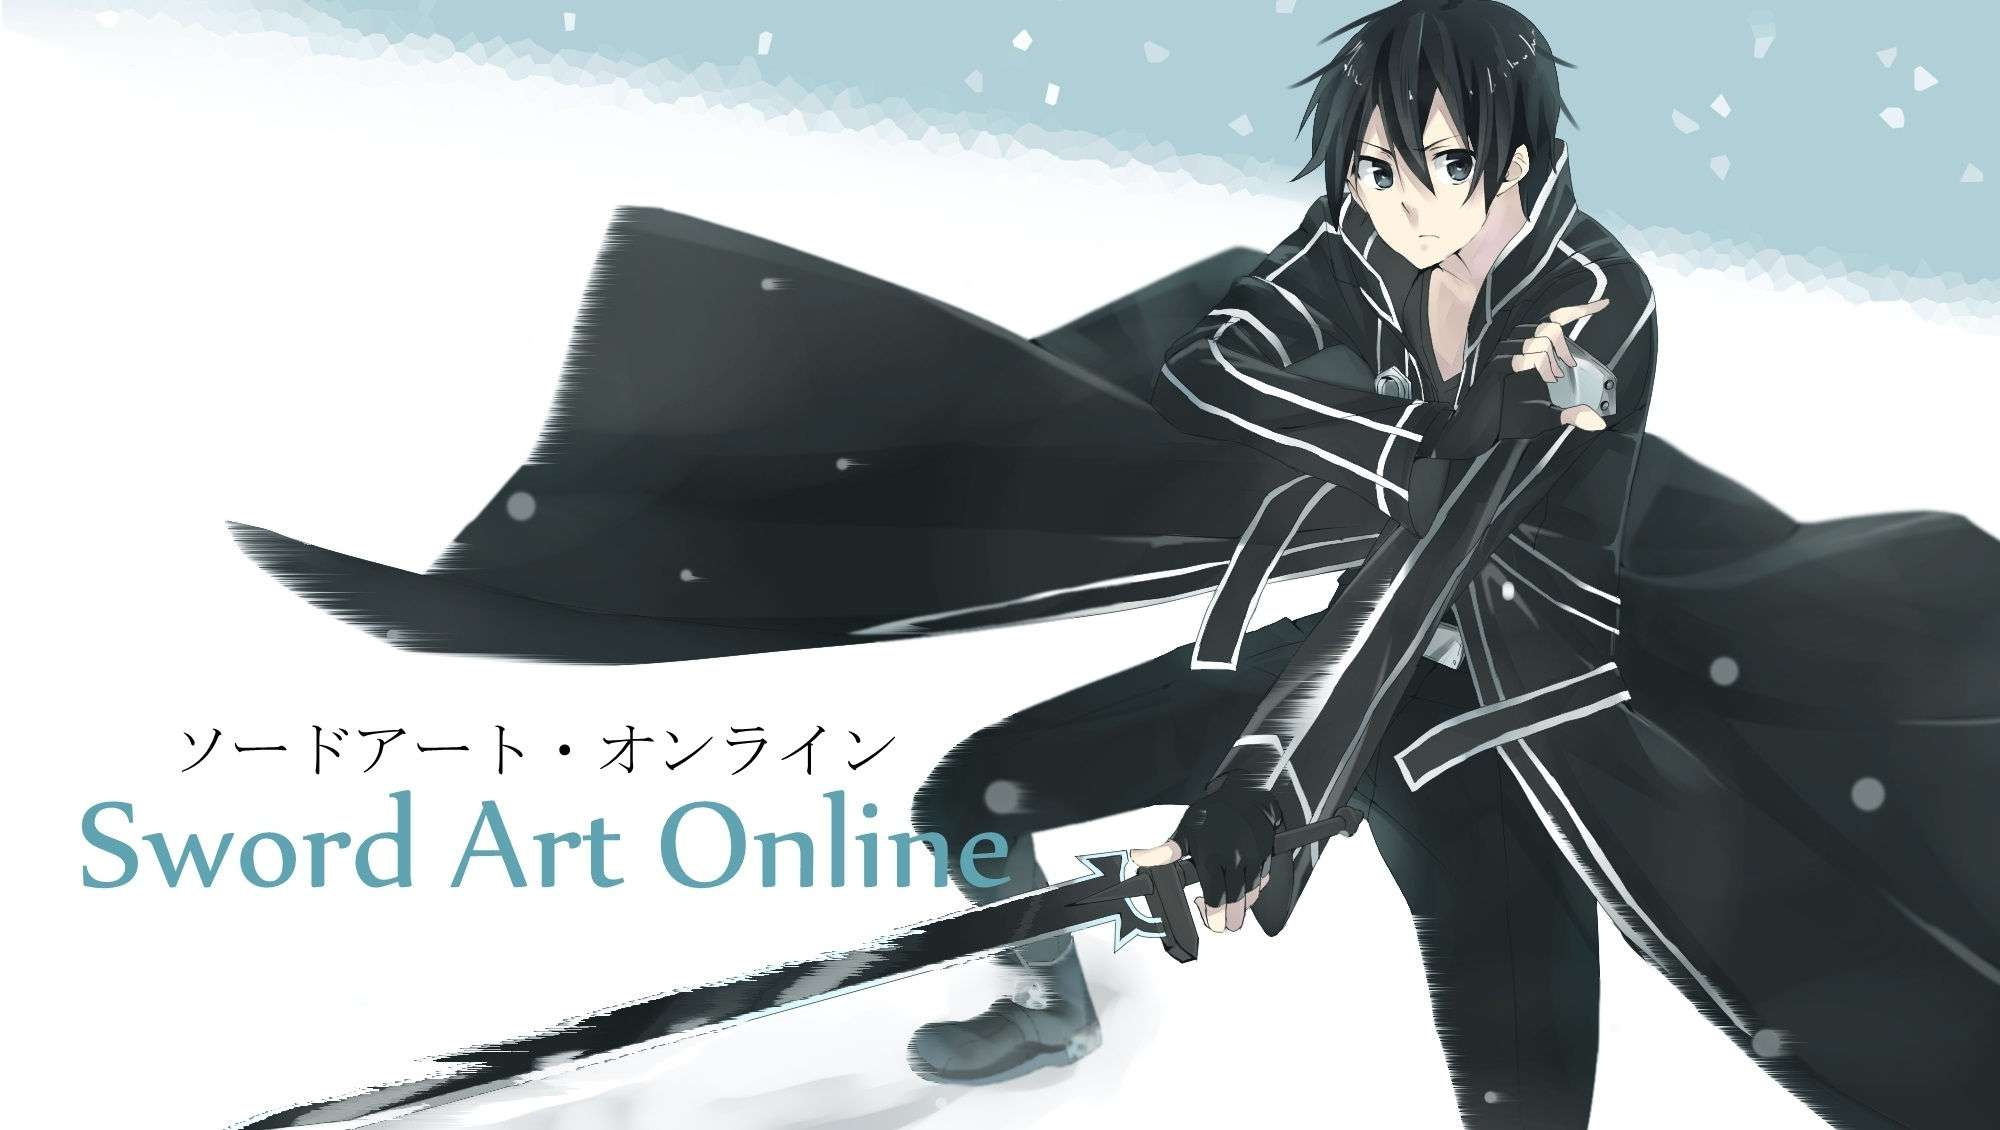 Sword Art Online Anime Wallpaper 004